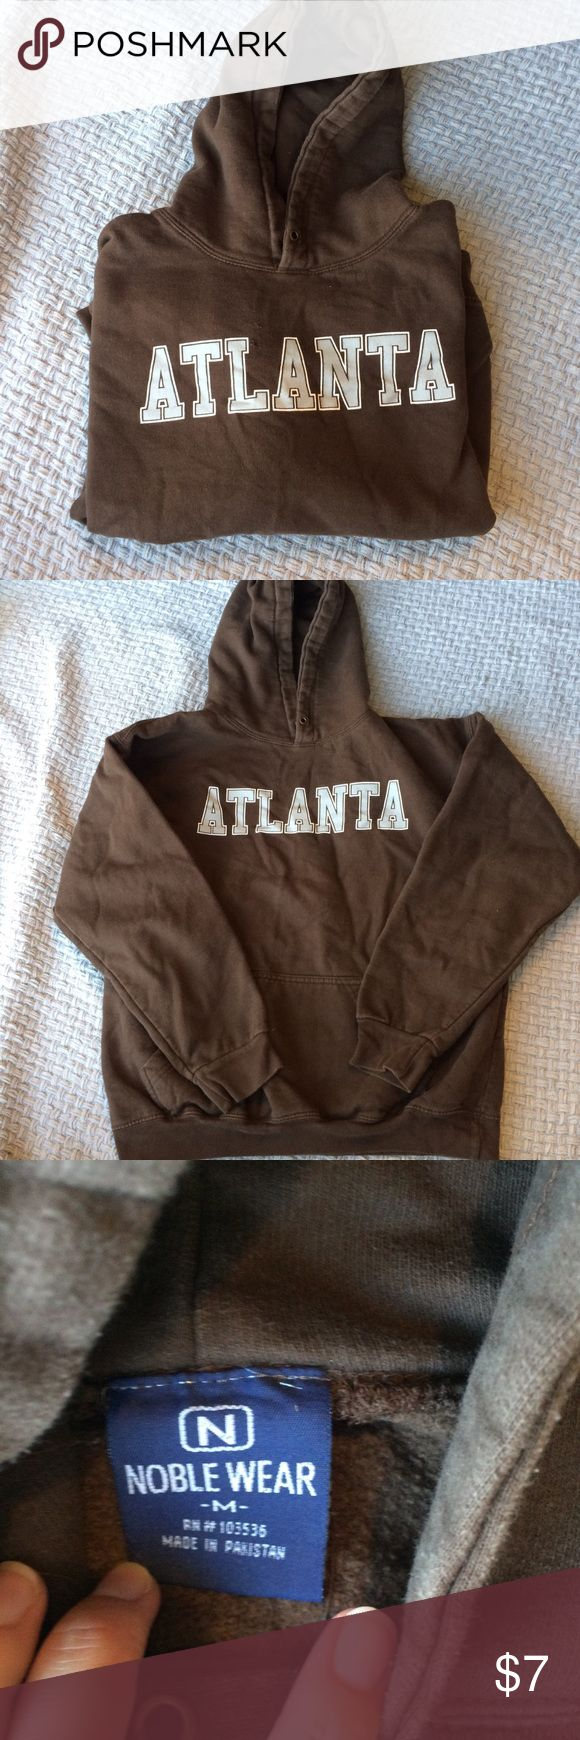 Atlanta, Georgia Airport Hoodie From the Atlanta Airport, size M, chocolate brown hoodie with kangaroo pocket. Note here is NO drawstring in the hood, and some wear holes in the front, pictured. It's comfy cozy though! Tops Sweatshirts & Hoodies